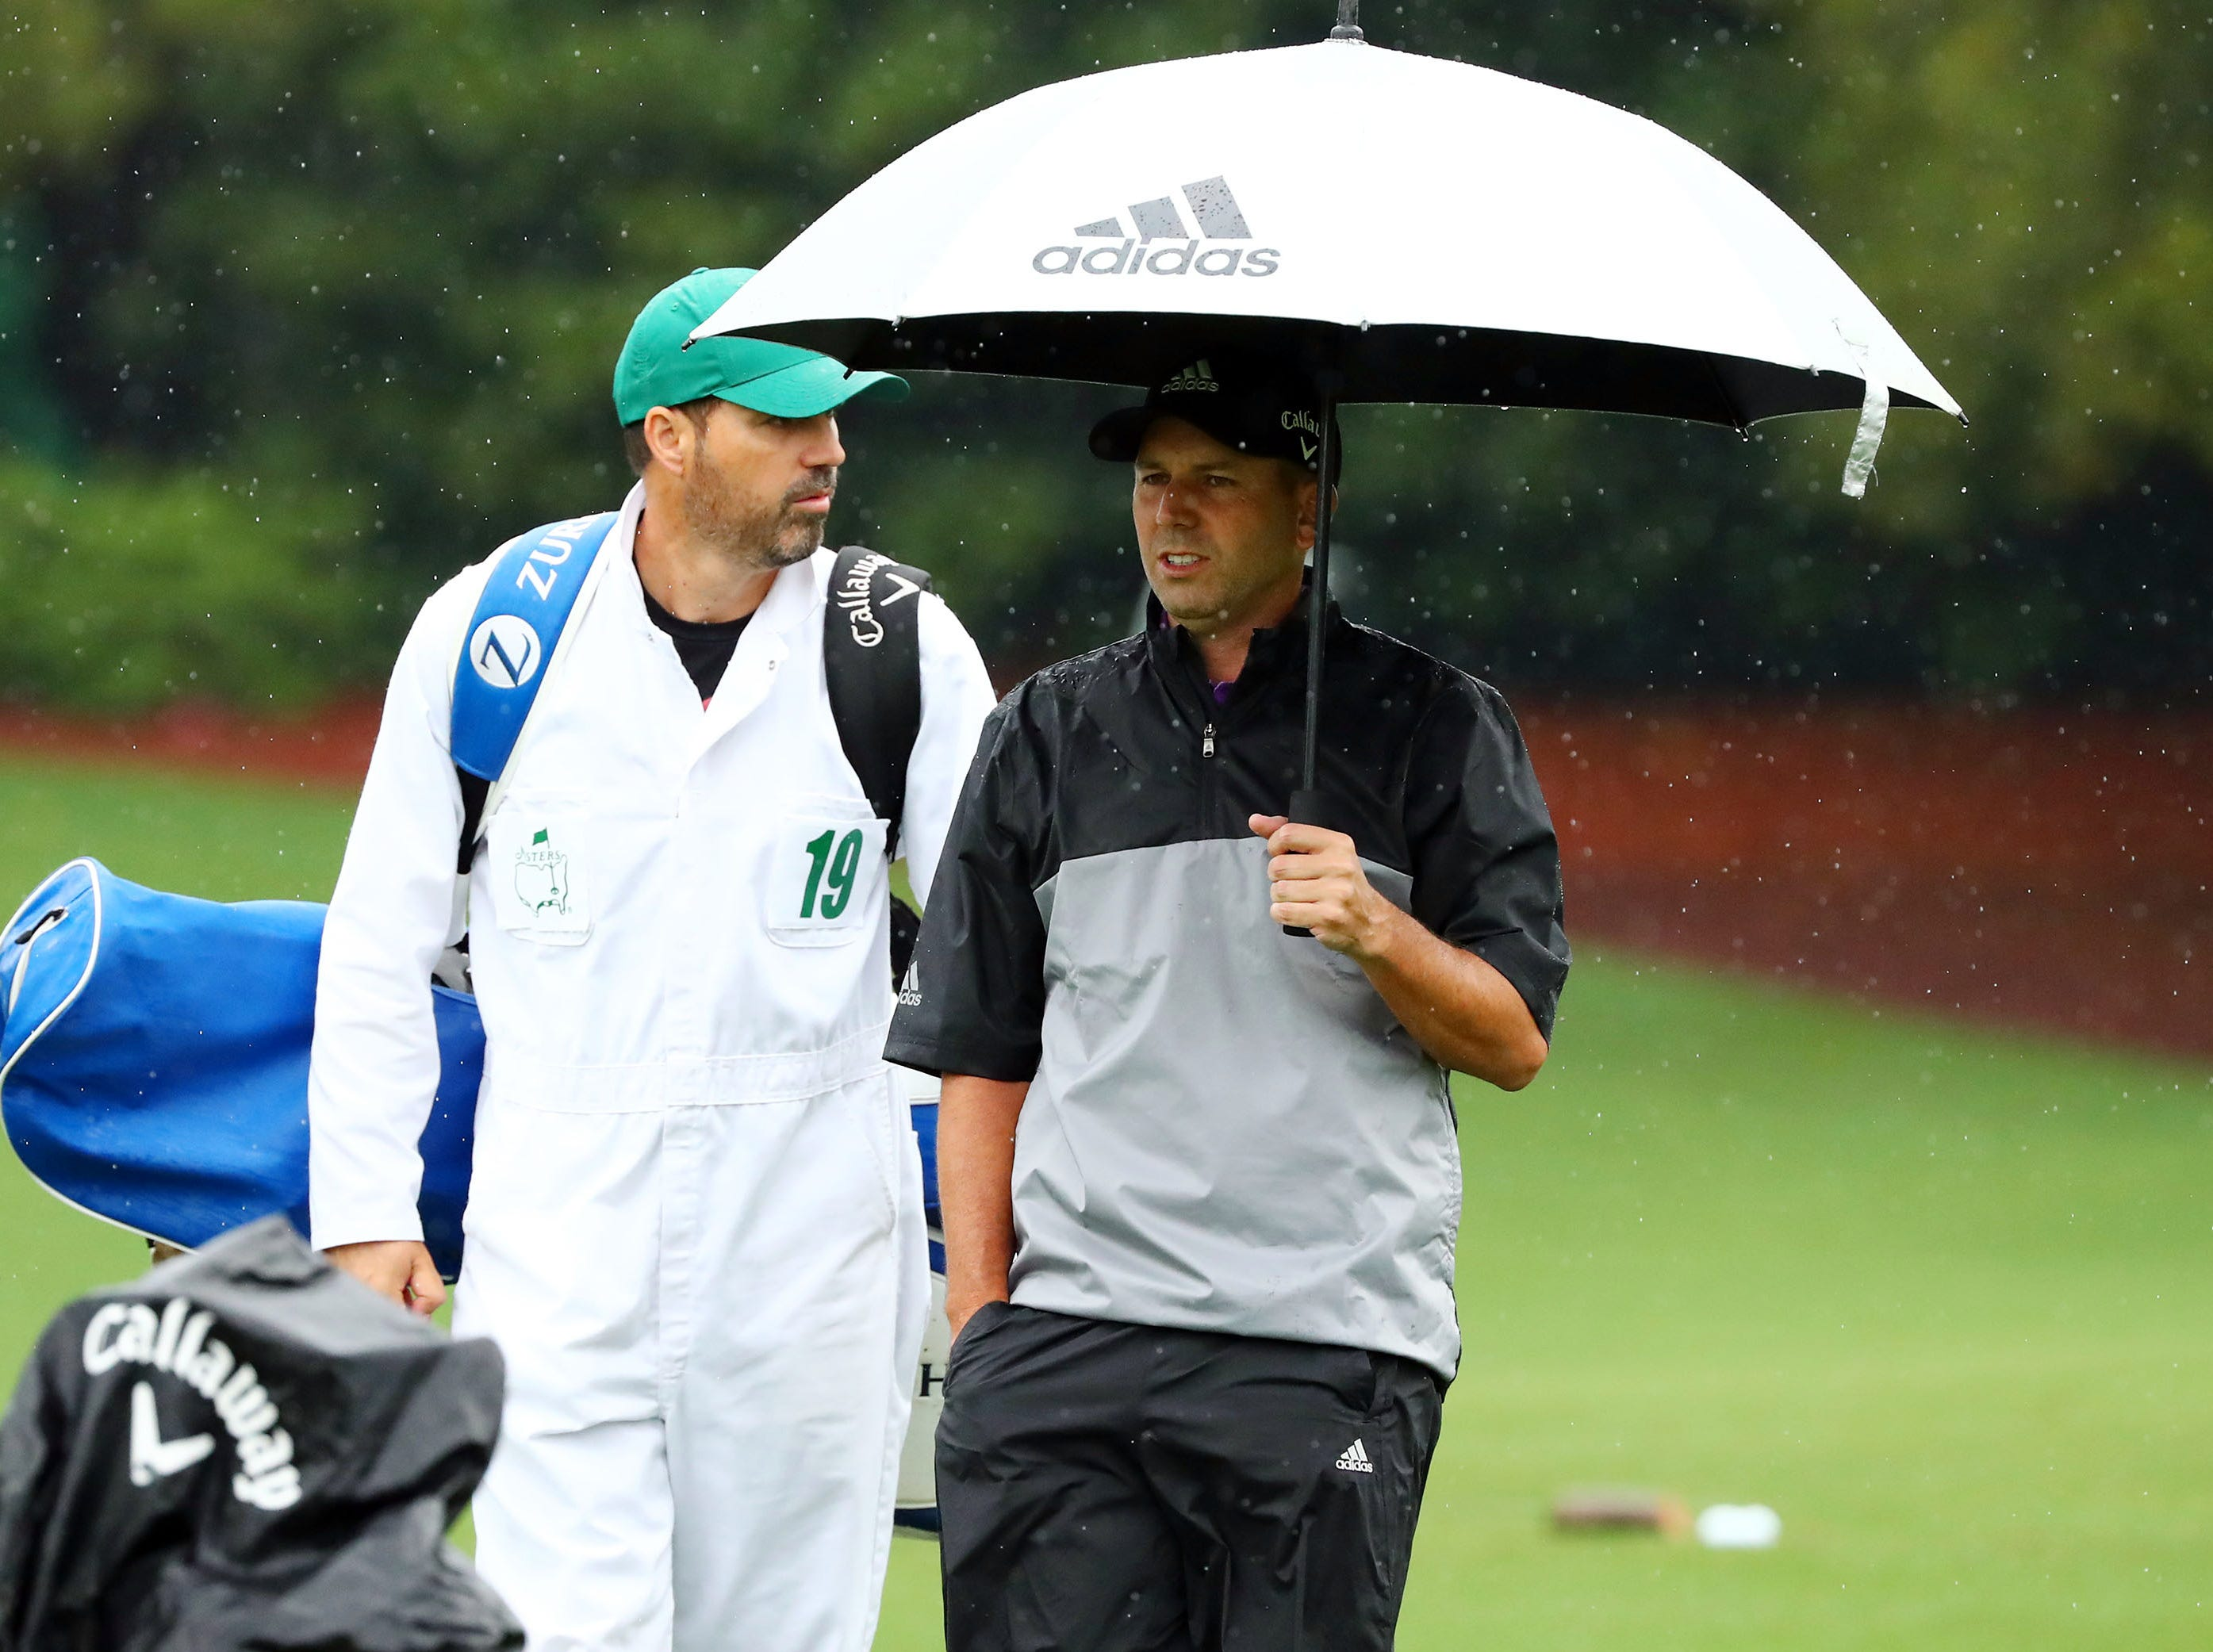 Apr 9, 2019; Augusta, GA, USA; Sergio Garcia of Spain arrives at the practice facility during a practice round for The Masters golf tournament at Augusta National Golf Club. Mandatory Credit: Rob Schumacher-USA TODAY Sports